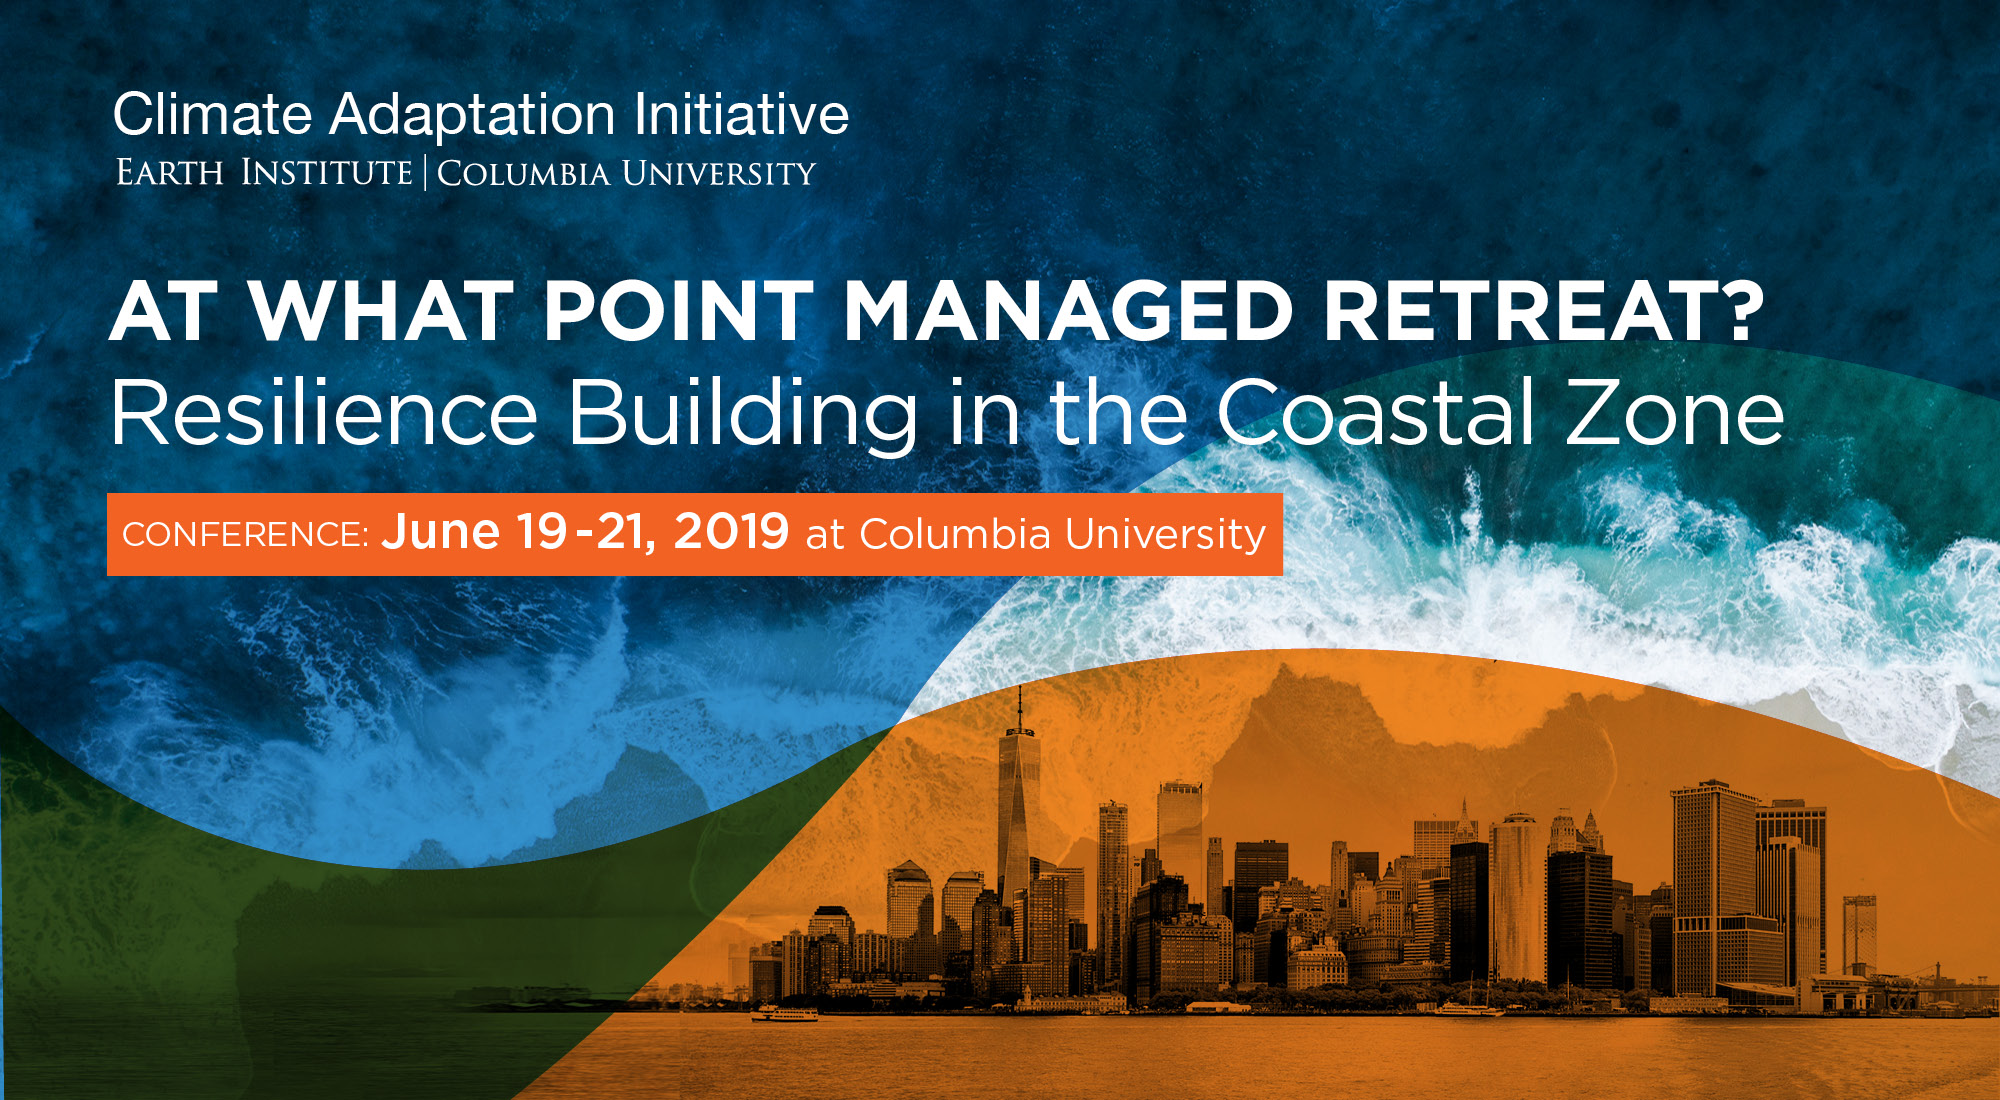 Conference: At What Point Managed Retreat?